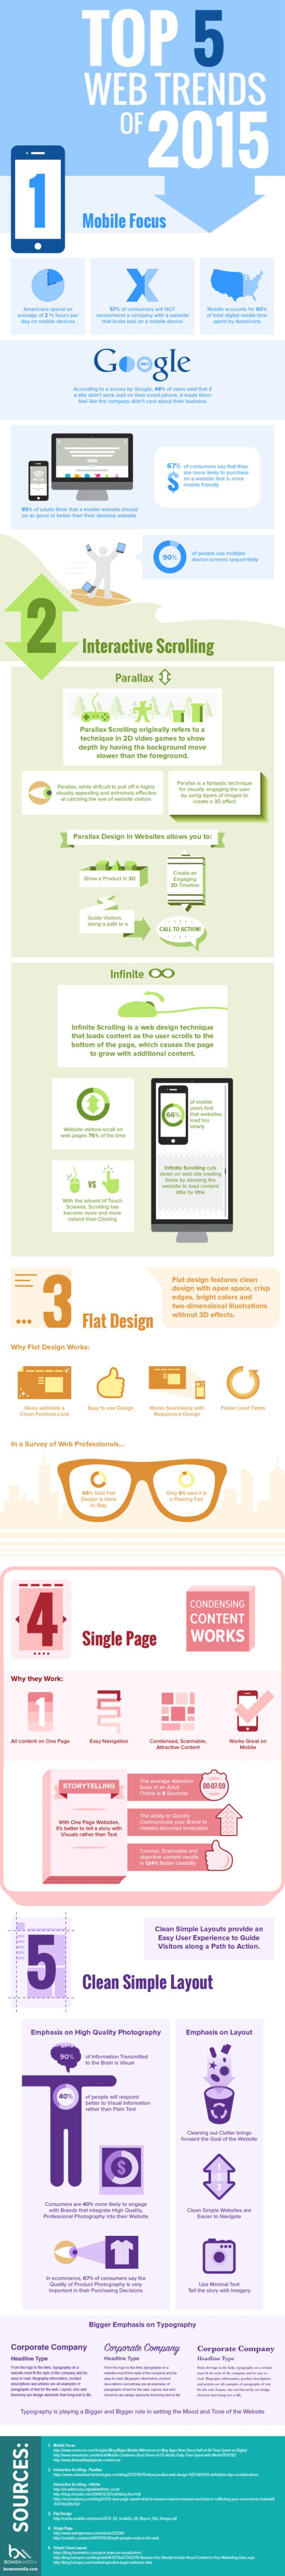 Bad designtrends top  web design trends   of consumers will not recommend a